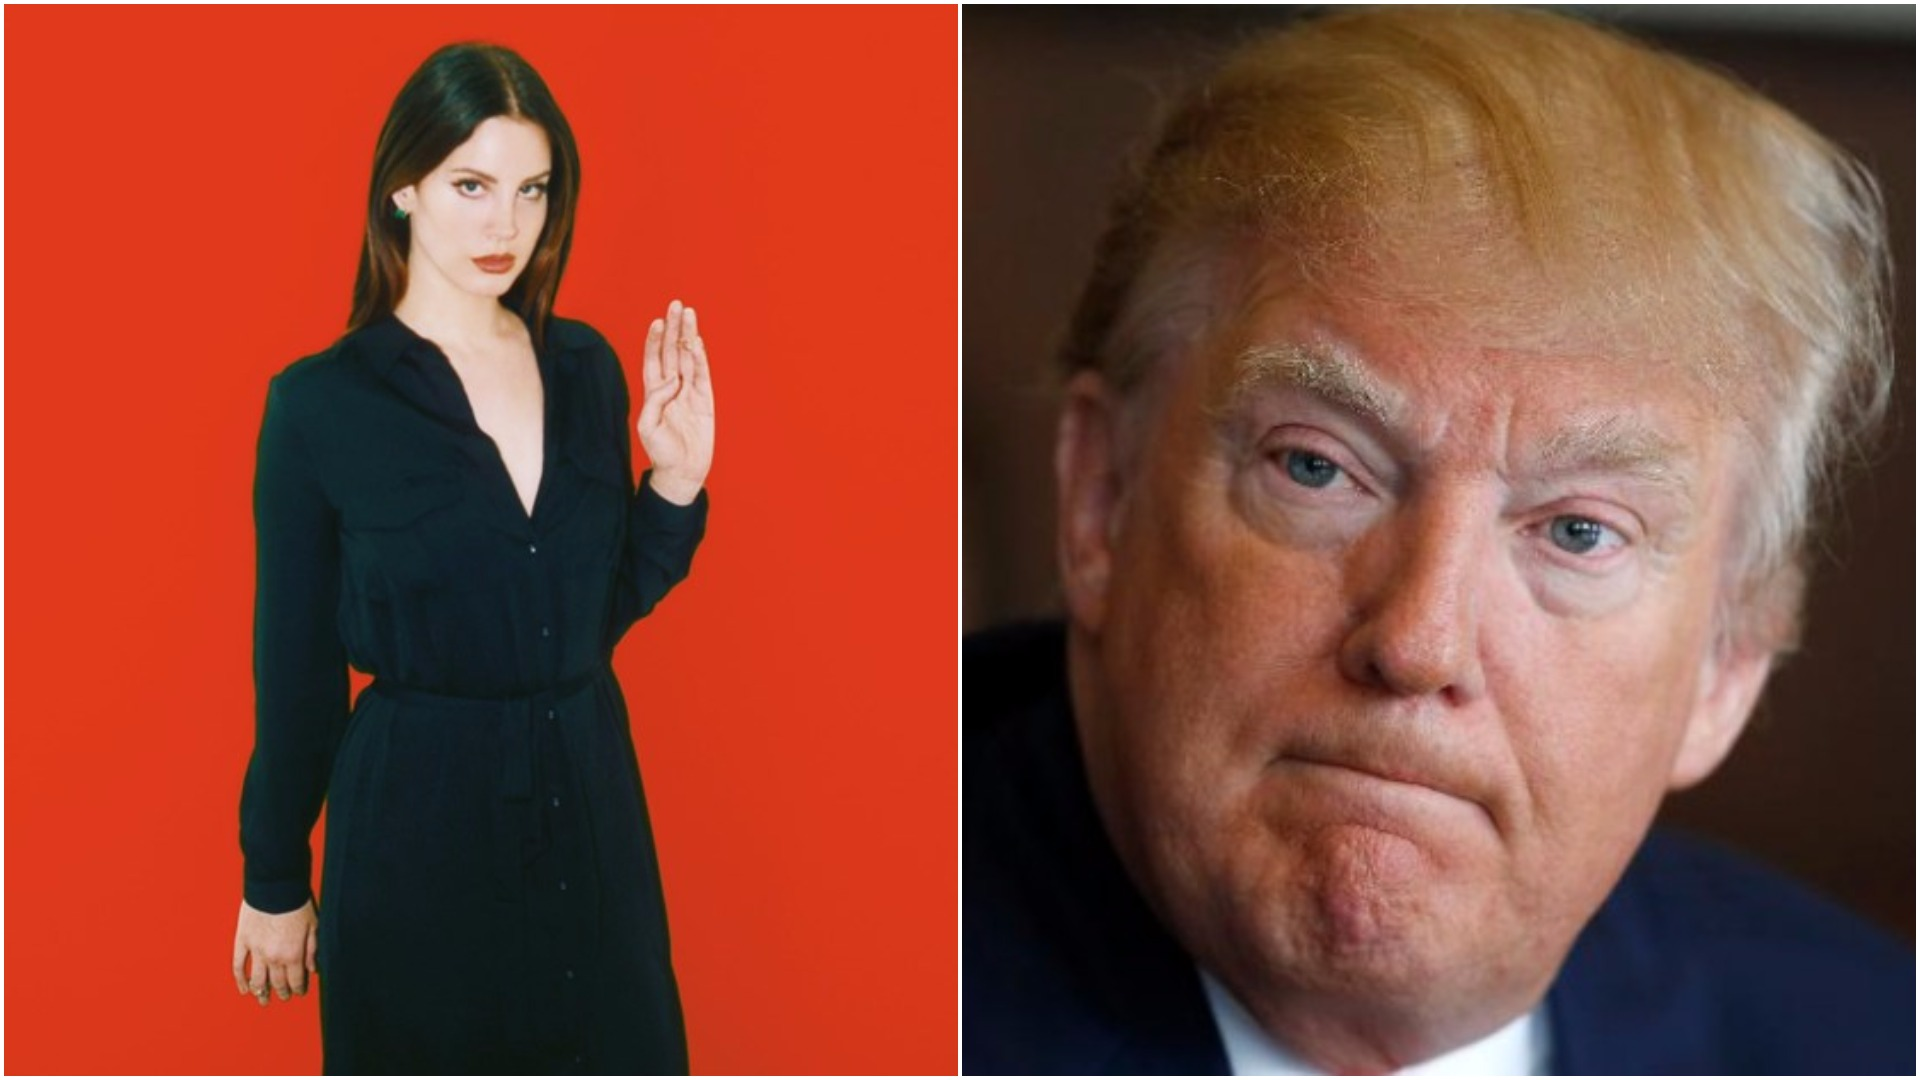 Lana Del Rey 'plans to join in with magic ritual binding spell designed to take out Donald Trump'